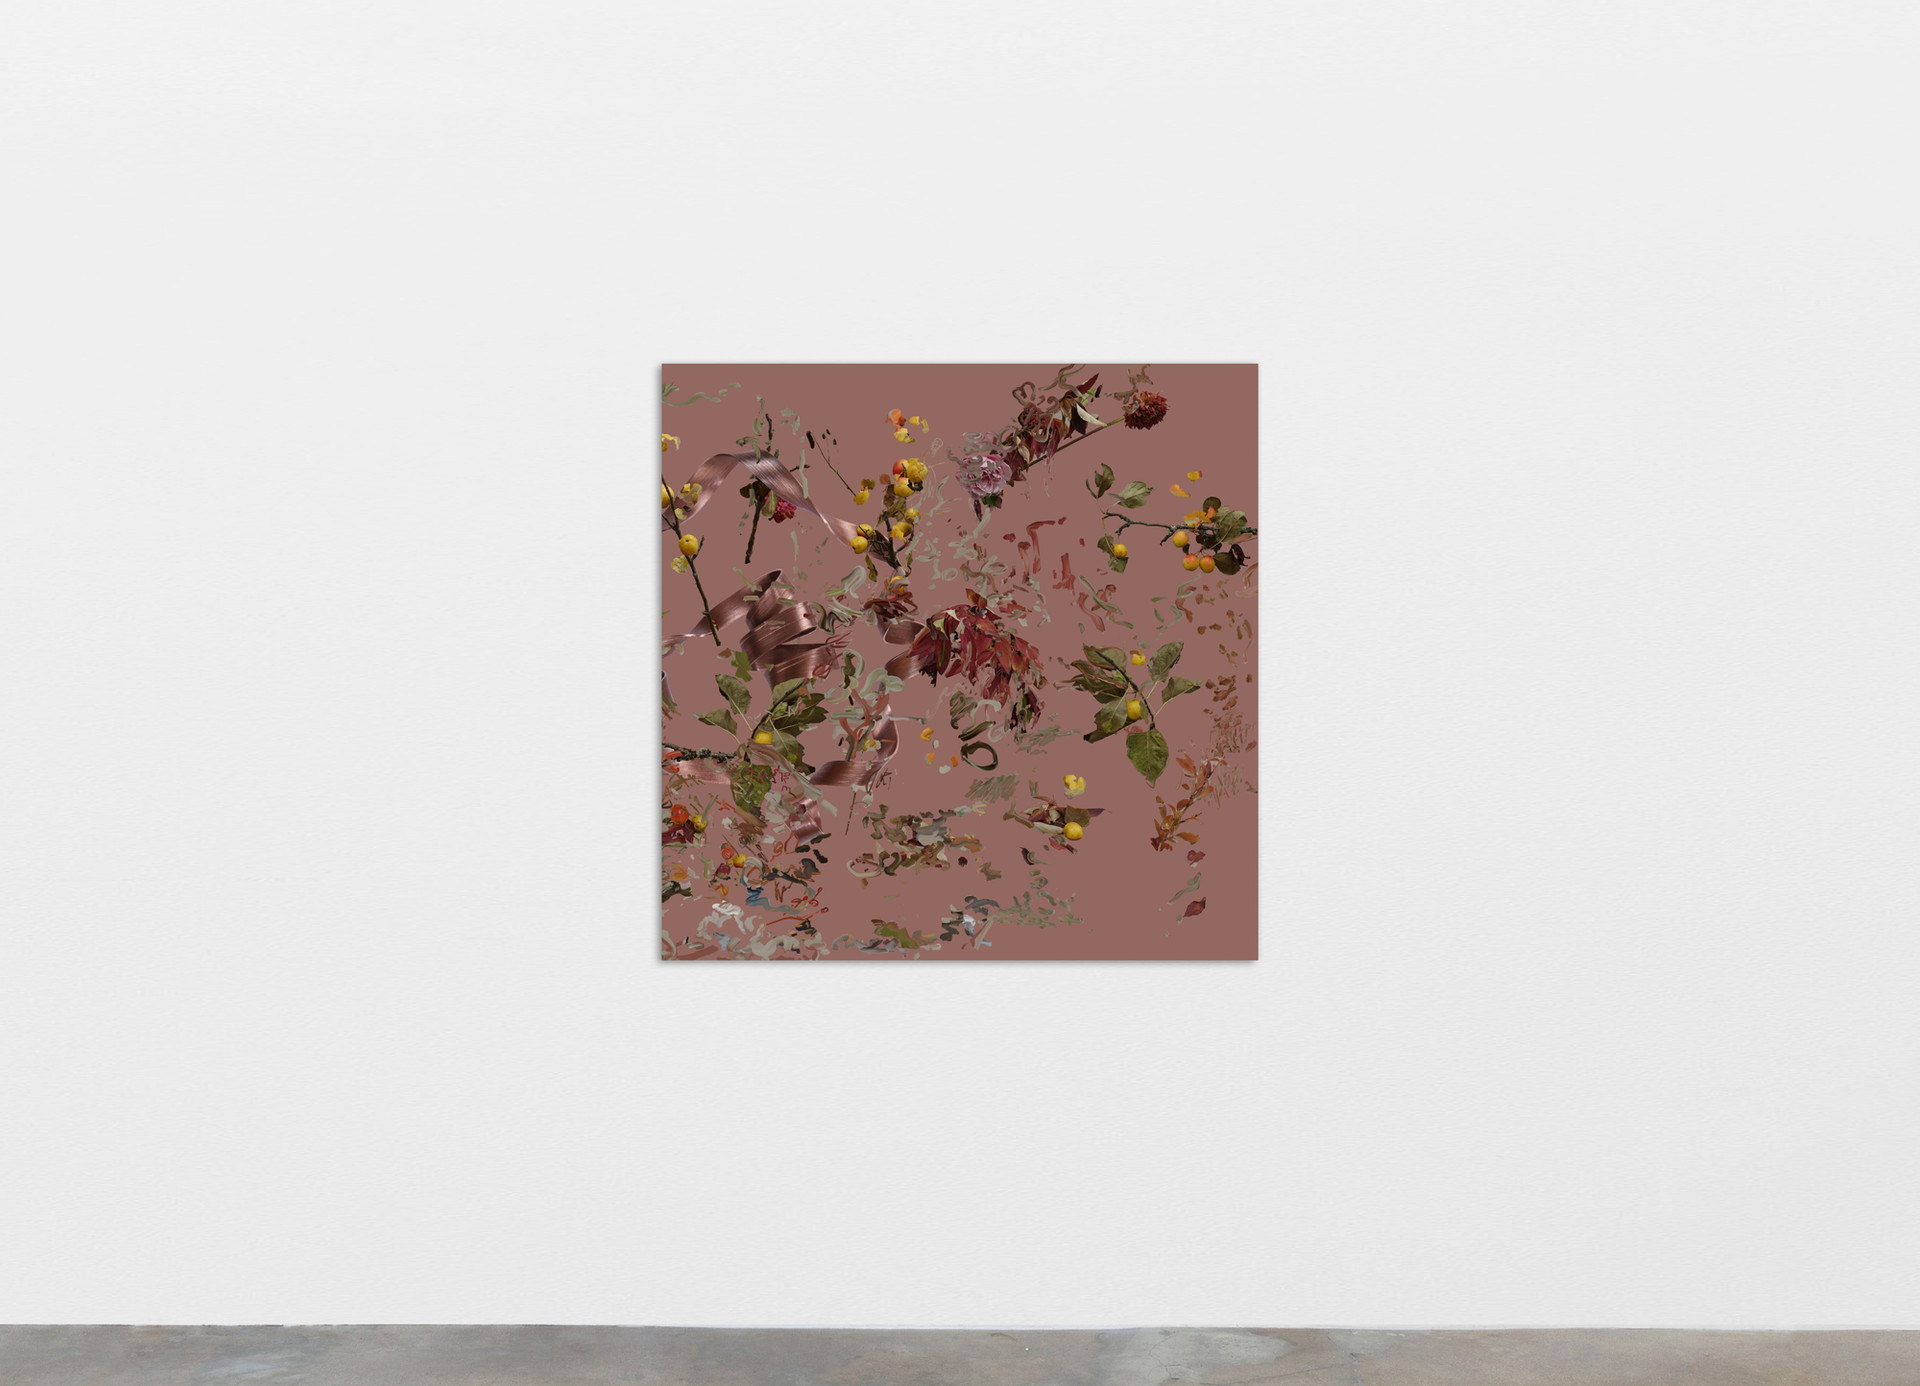 Petra Cortright hack crack appz fireworks hippocampus, 2020 Digital painting on anodized aluminum 83.82 x 83.82 cm 33 x 33 in